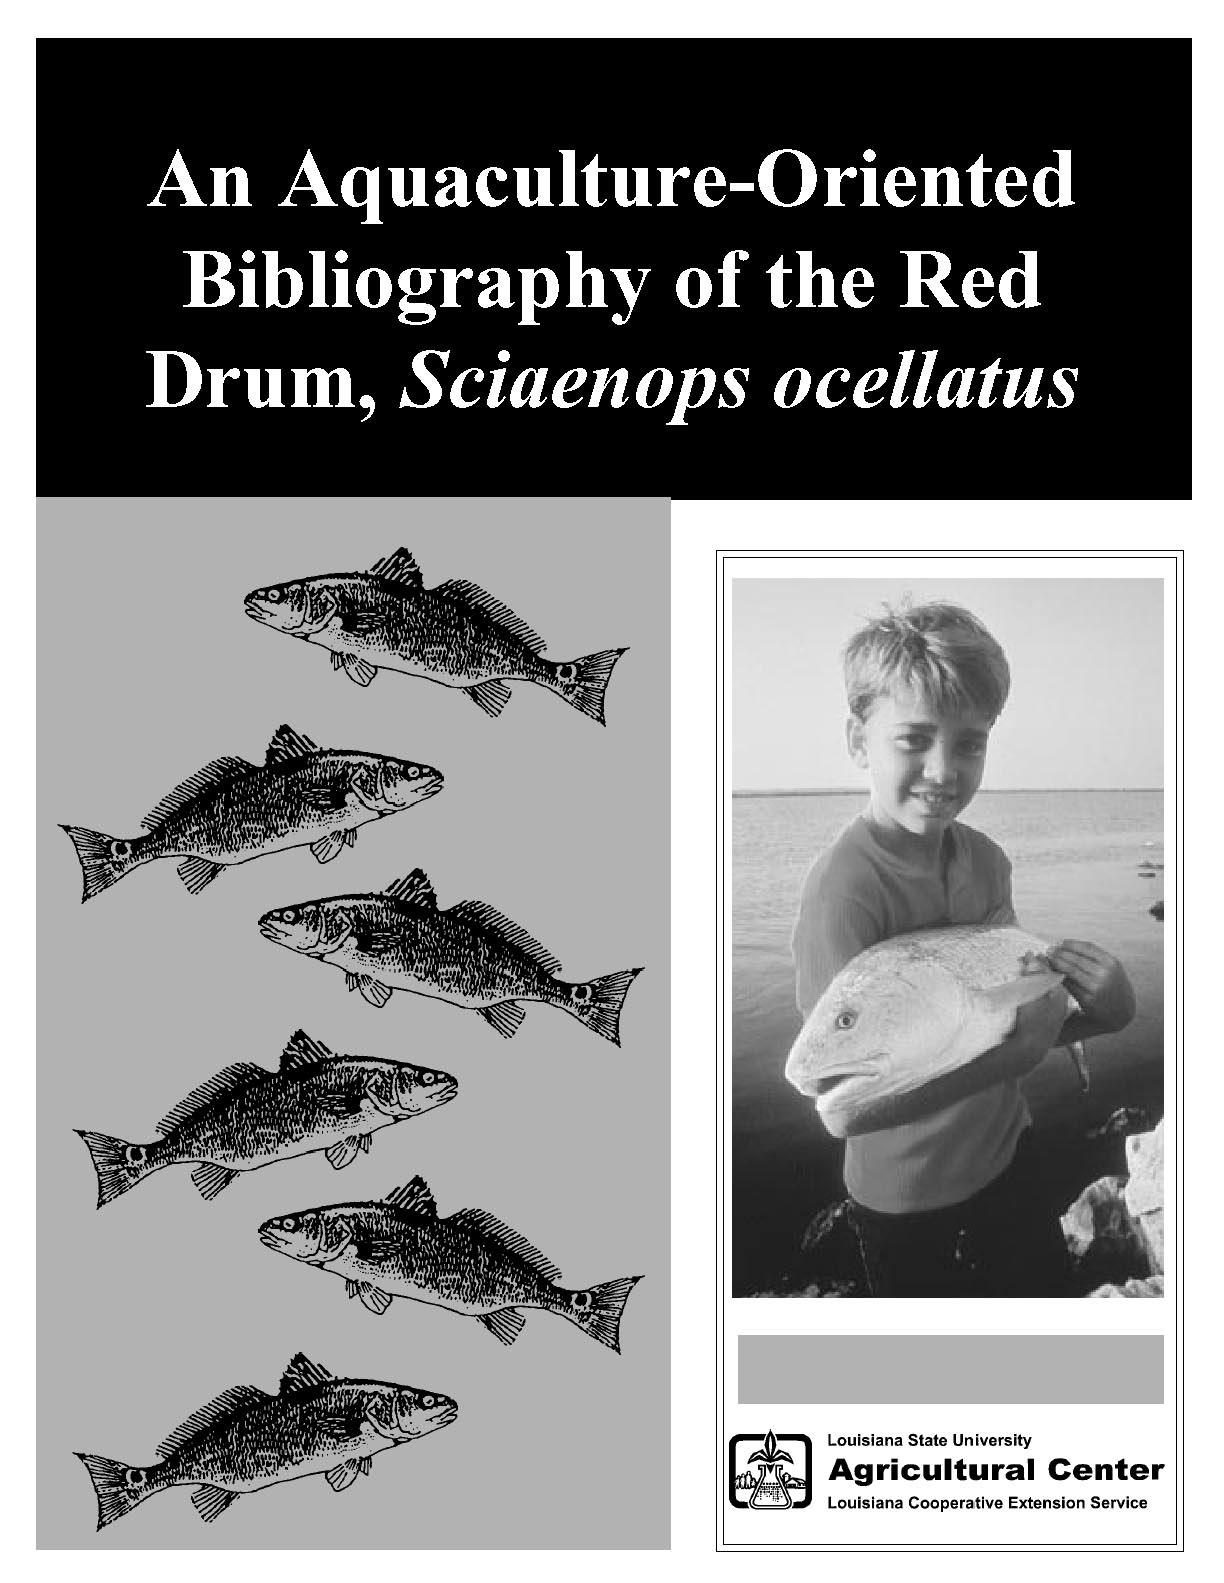 An Aquaculture-Oriented Bibliography of the Red Drum Sciaenops ocellatus